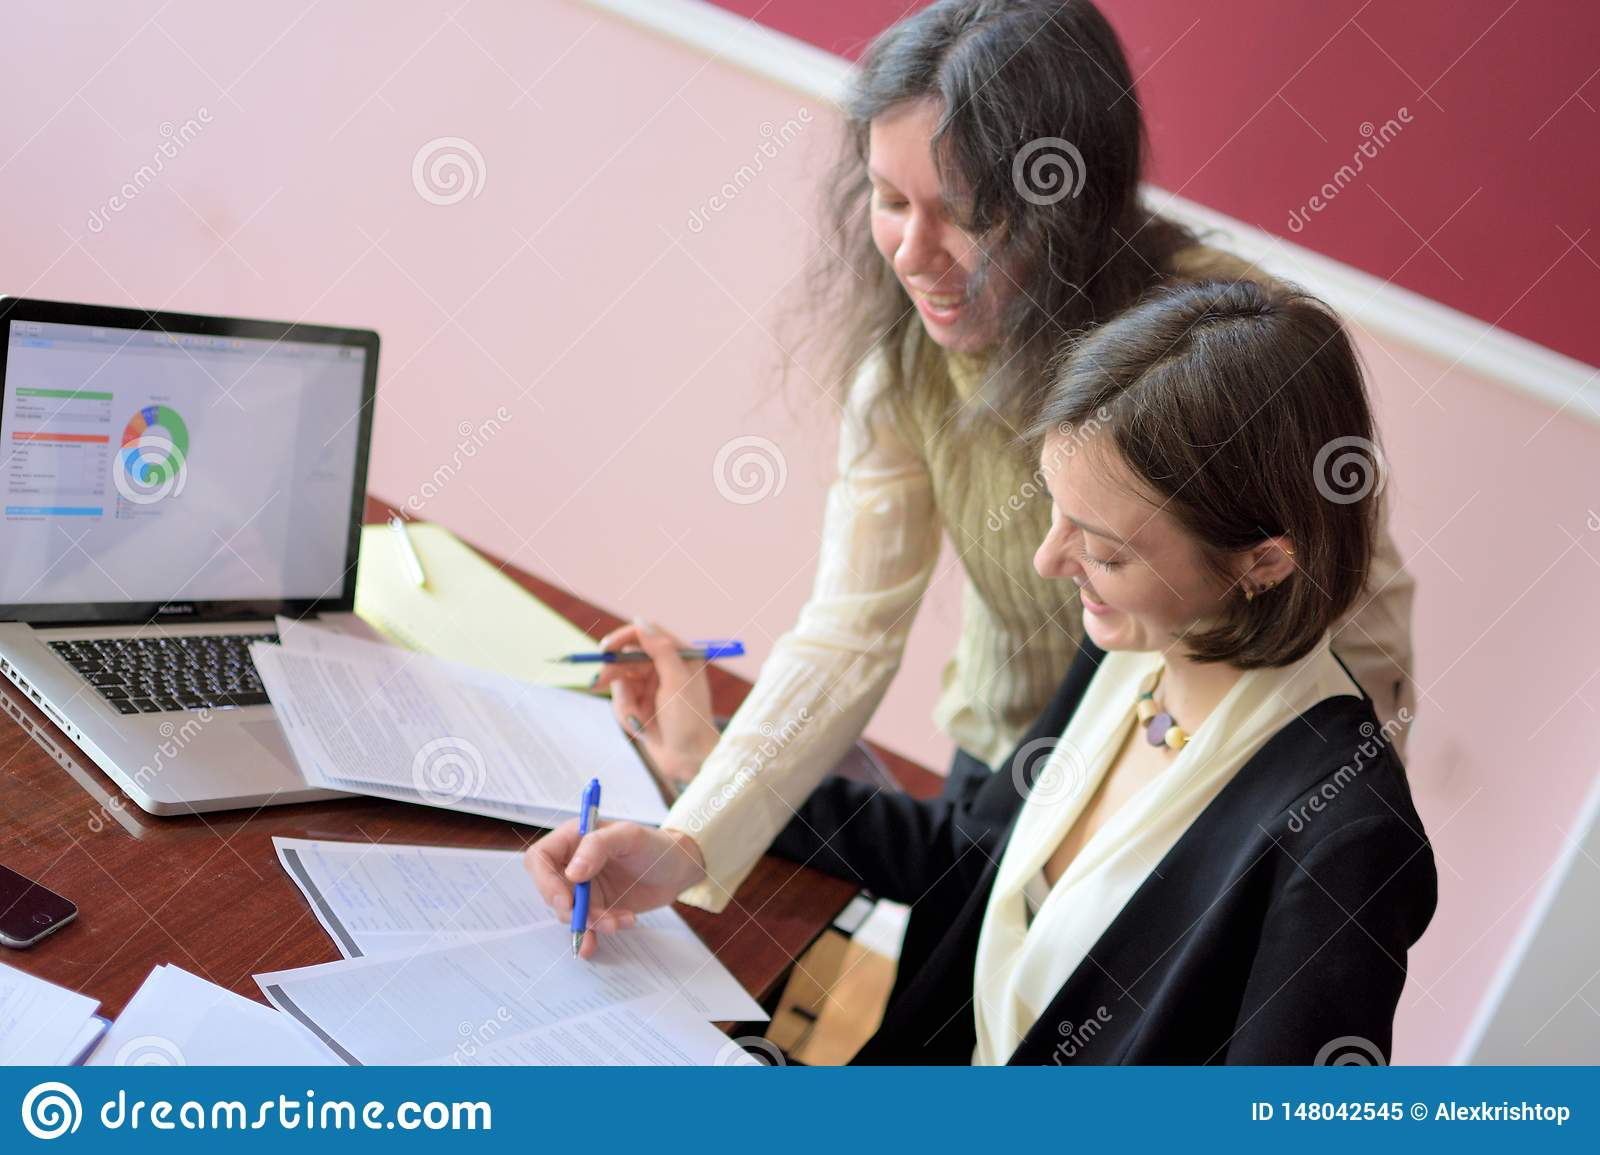 Young smartly dressed lady helps another young lady to work with documents, fill forms and sign. They sit together in a vintage